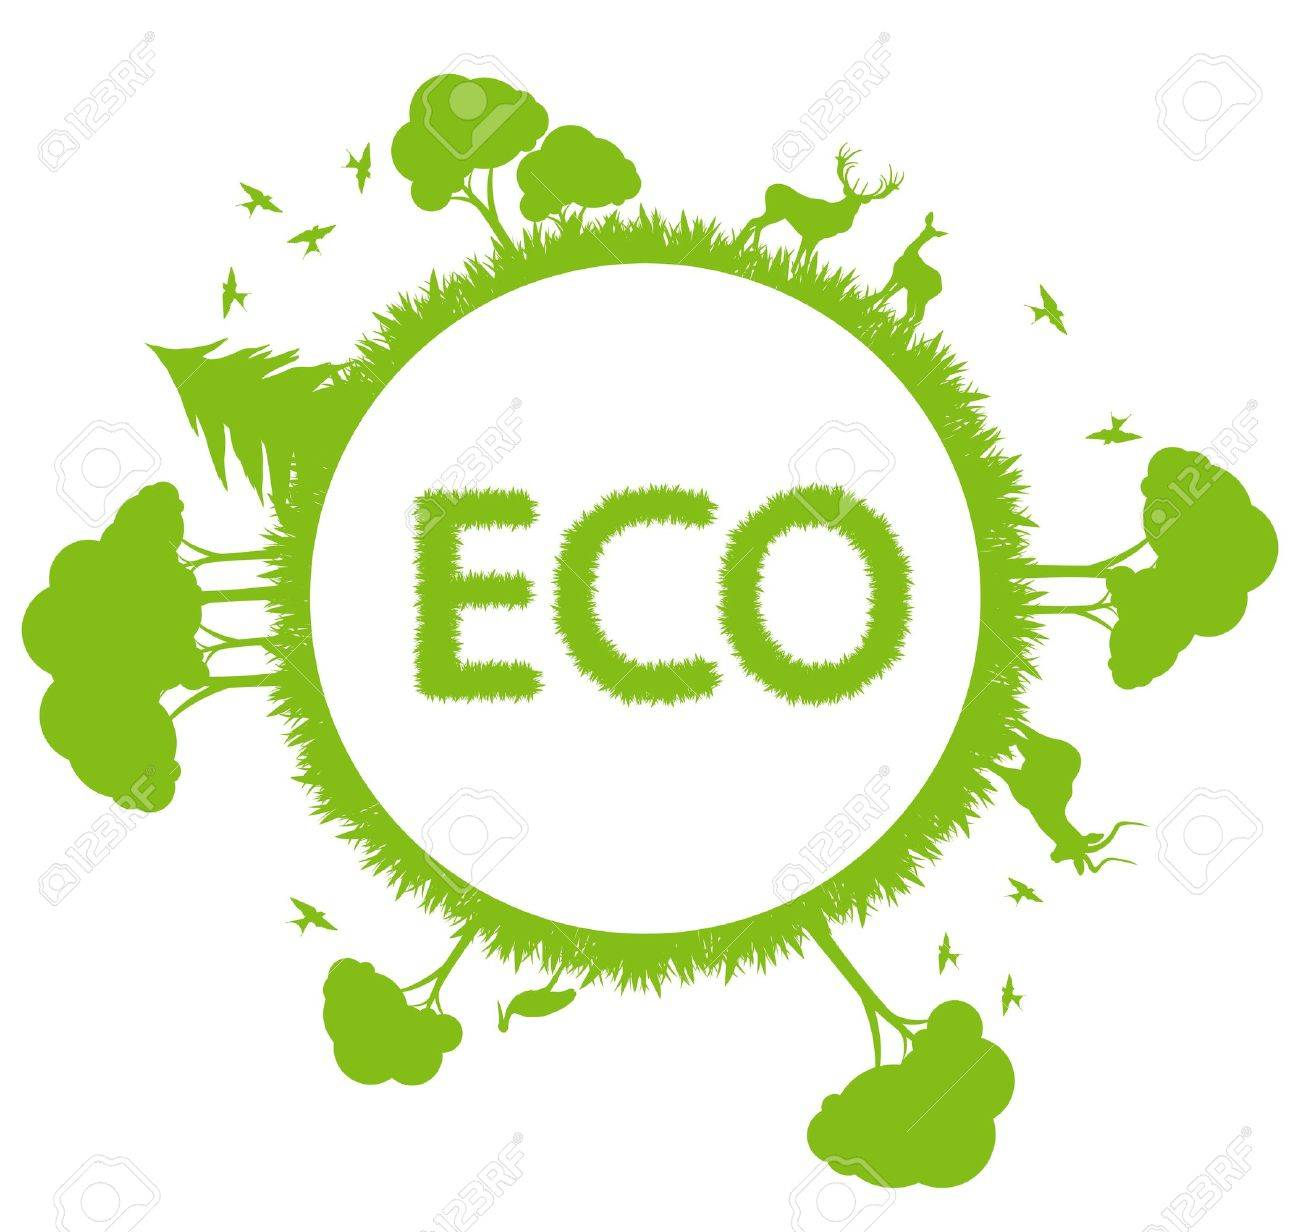 Green ecology planet vector background with trees around globe Stock Vector - 12045231